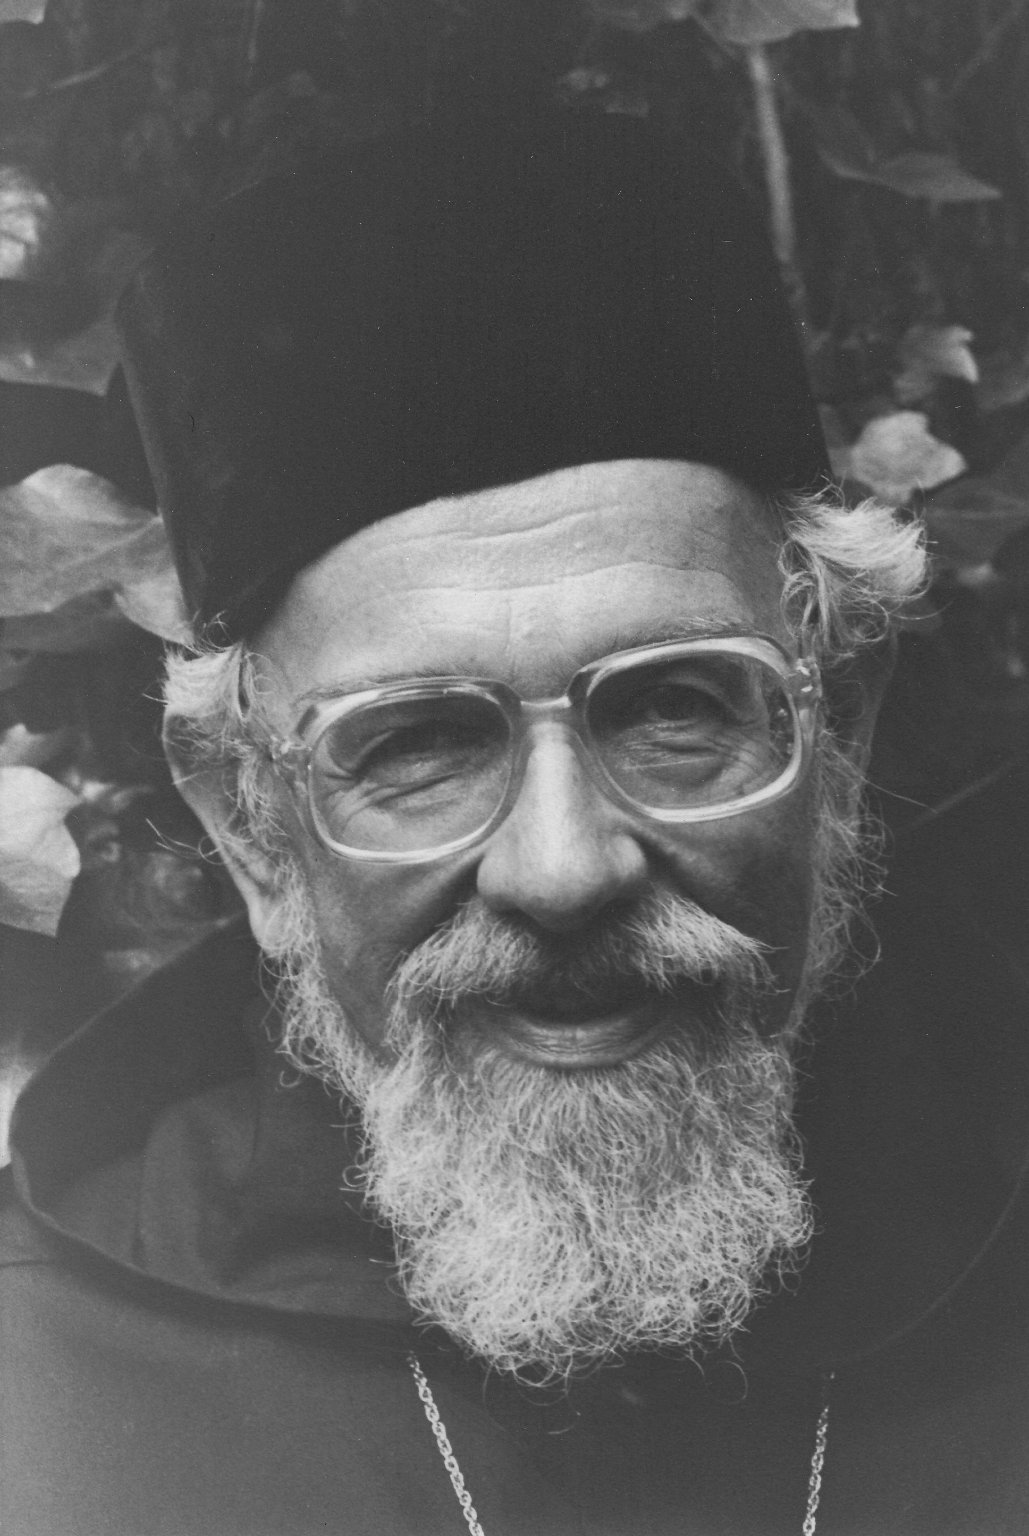 Rabbi Zalman Schachter-Shalomi in black robe and hat, ca. 1980s.